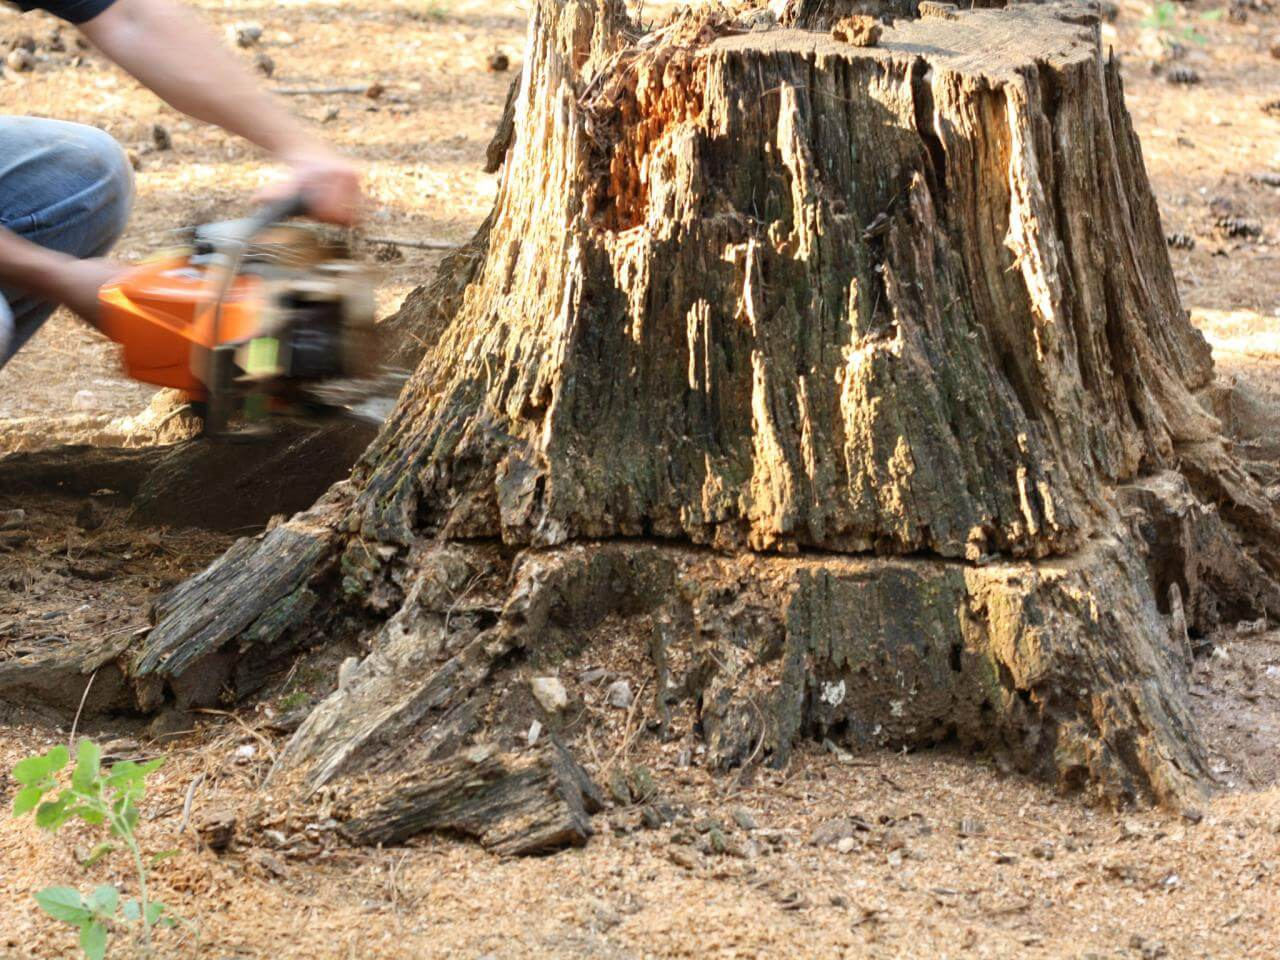 Stump Removal-Greensboro Tree Trimming and Stump Grinding Services-We Offer Tree Trimming Services, Tree Removal, Tree Pruning, Tree Cutting, Residential and Commercial Tree Trimming Services, Storm Damage, Emergency Tree Removal, Land Clearing, Tree Companies, Tree Care Service, Stump Grinding, and we're the Best Tree Trimming Company Near You Guaranteed!